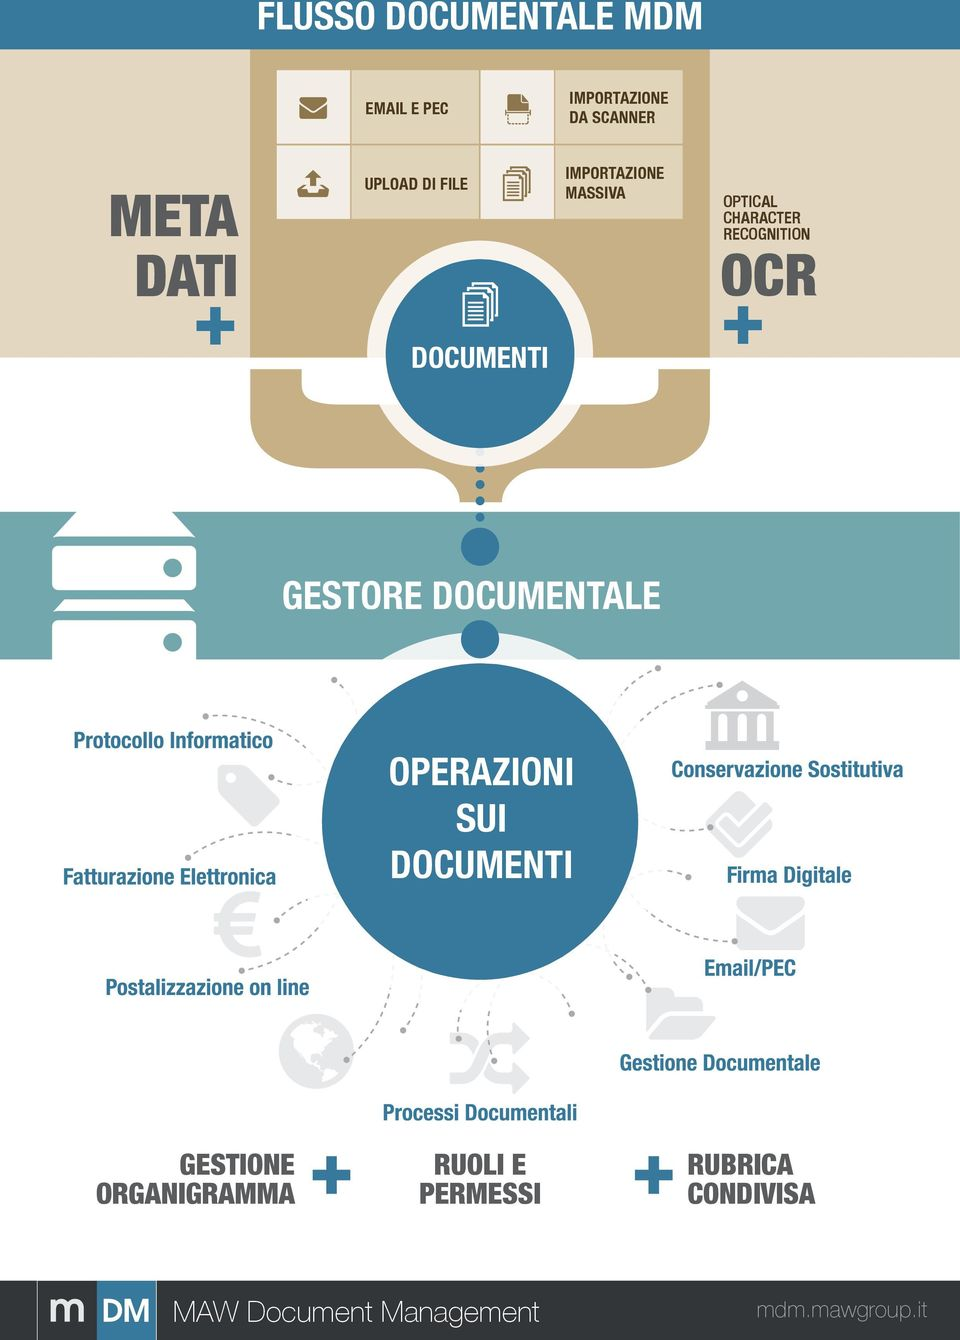 RECOGNITION OCR + DOCUMENTI + GESTORE DOCUMENTALE OPERAZIONI